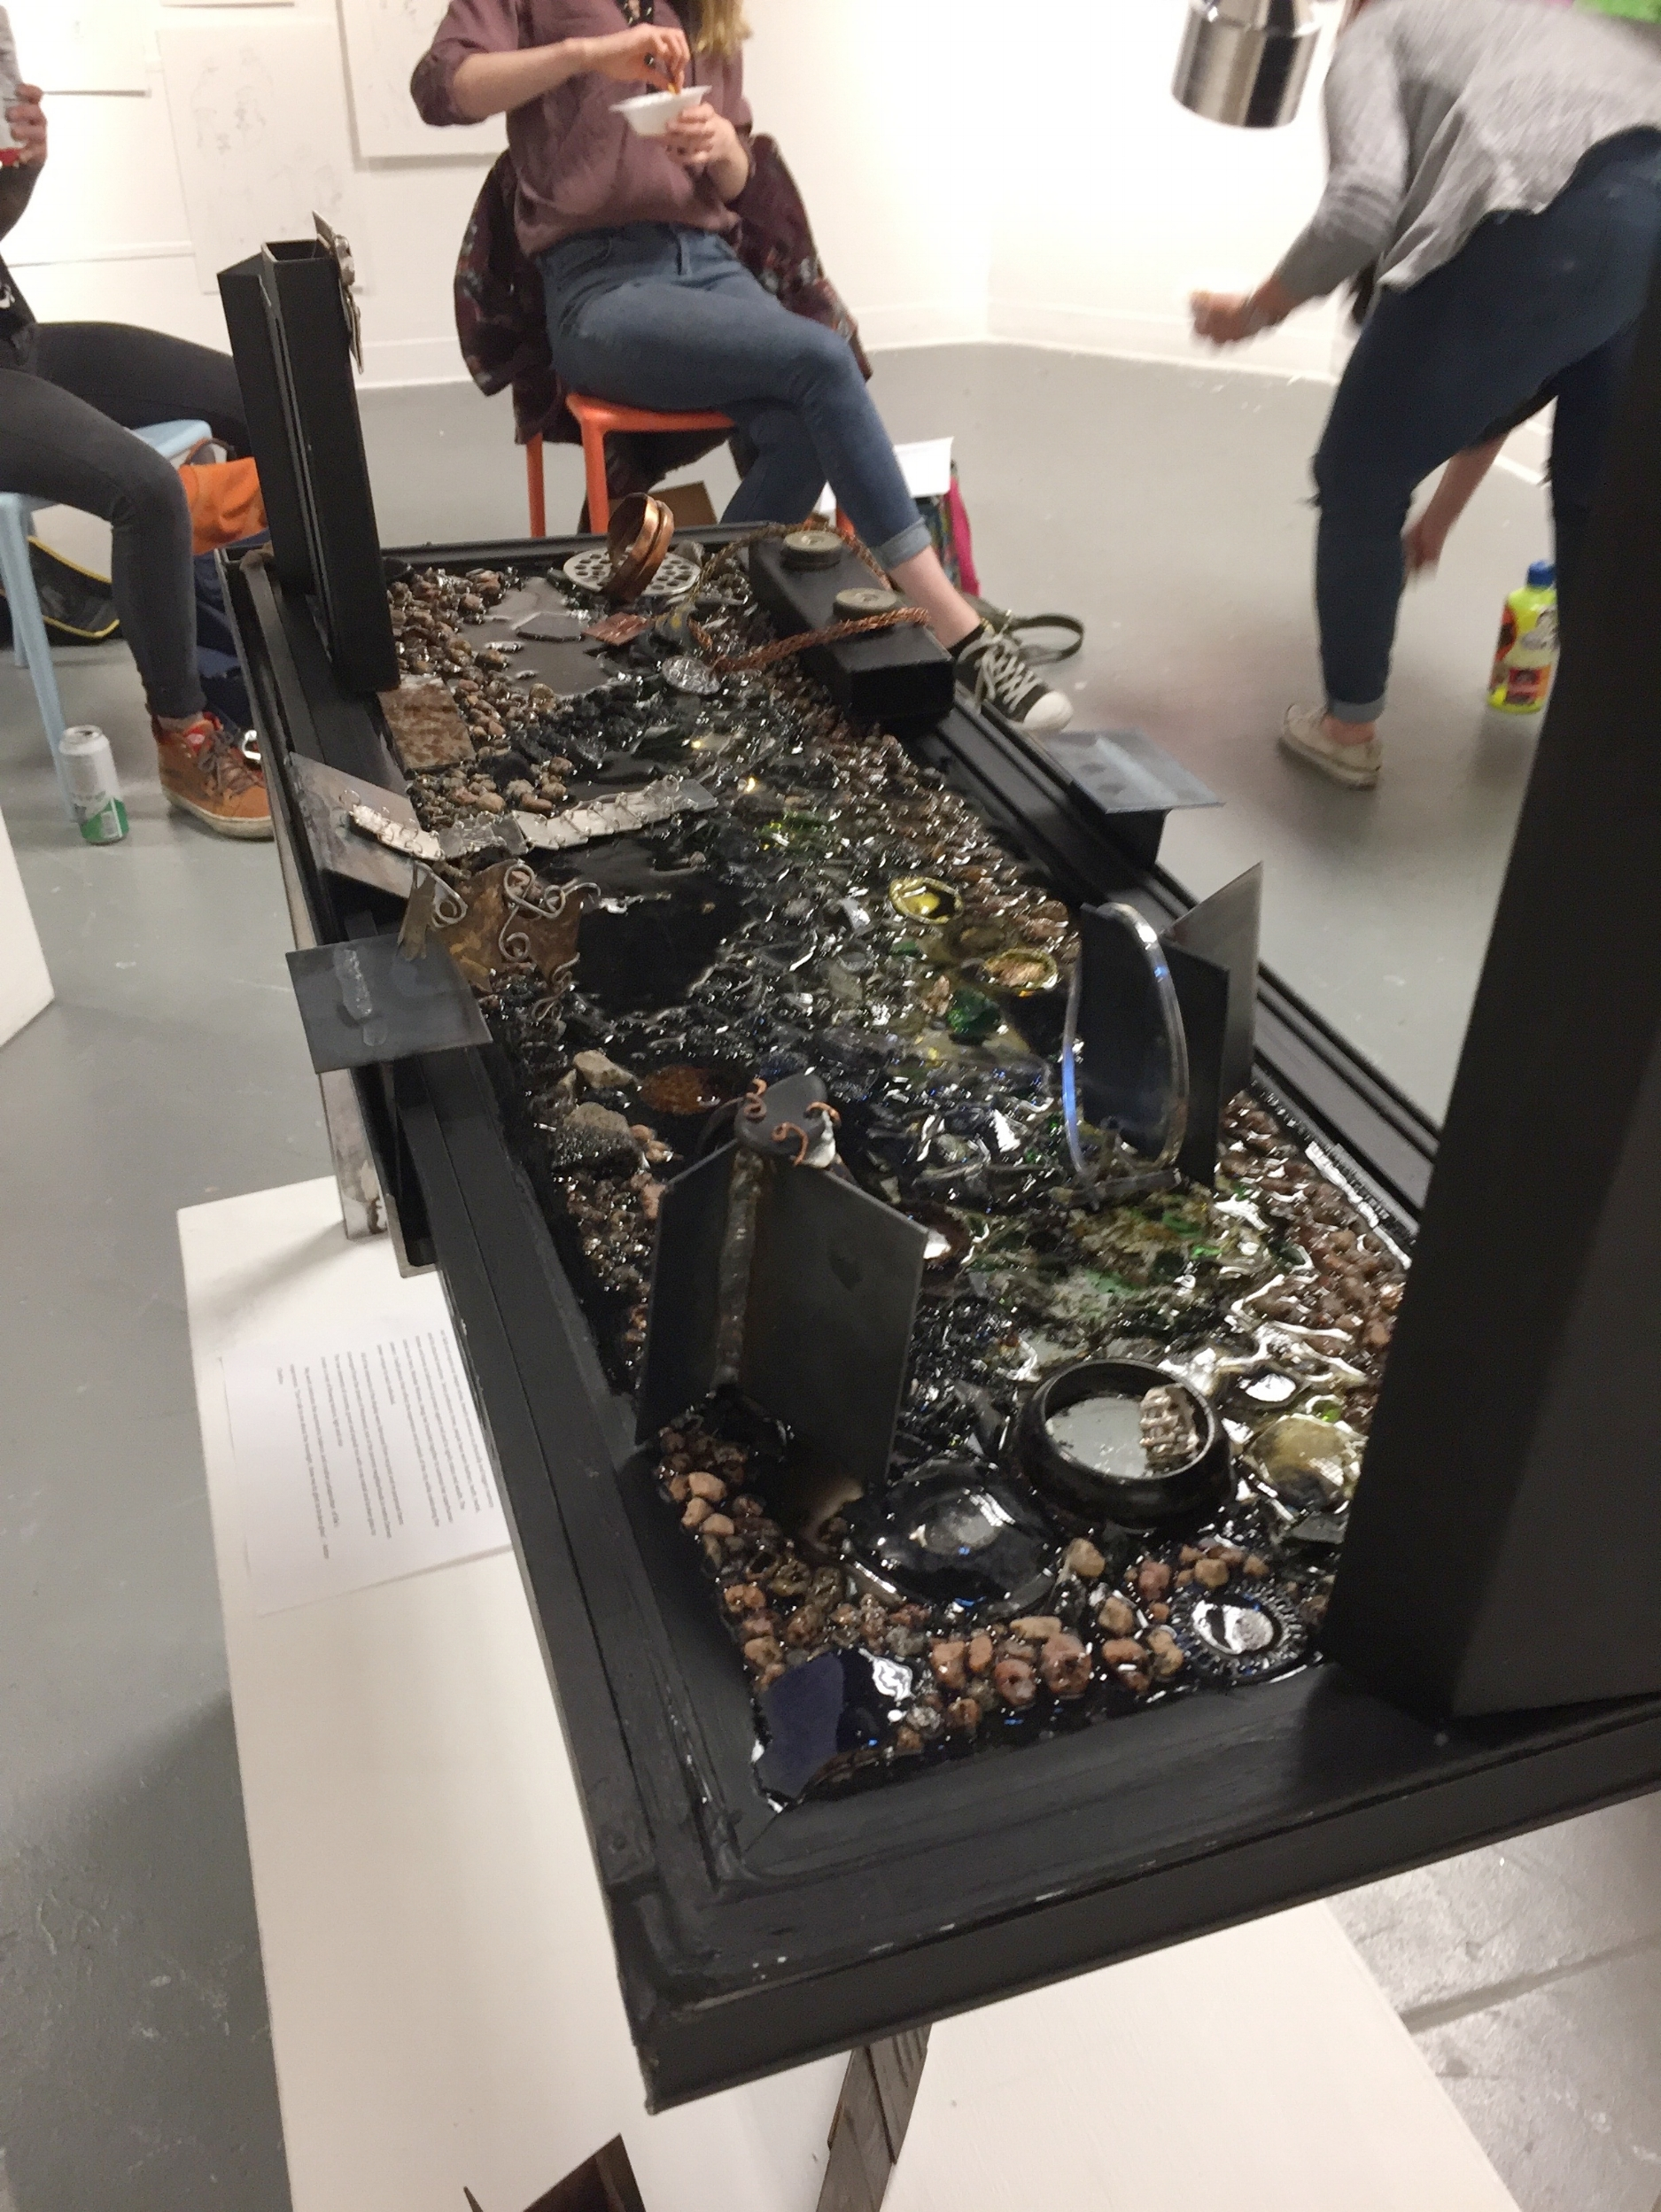 Gallery presentation of tableau, with jewelry pieces. The created environment adds impact to the jewelry and gives context to their design and fabrication methods and materials.